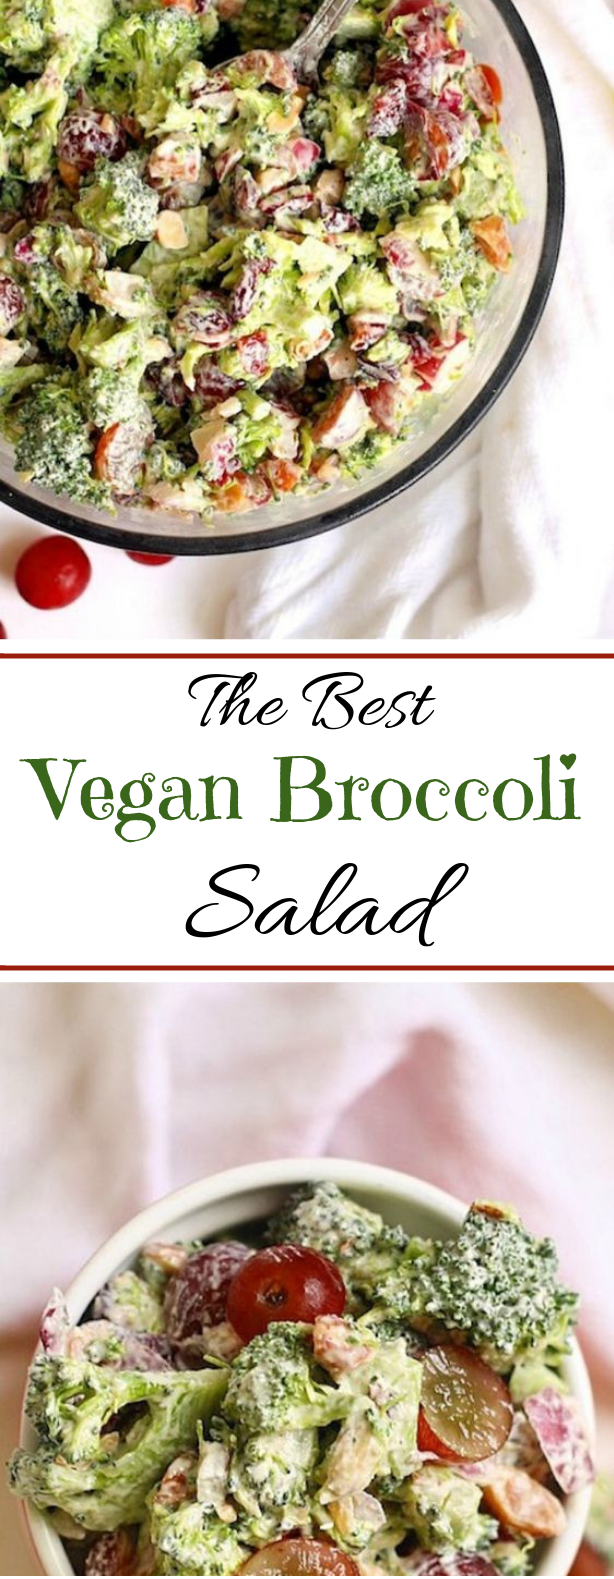 The Best Vegan Broccoli Salad #vegetarian #salad